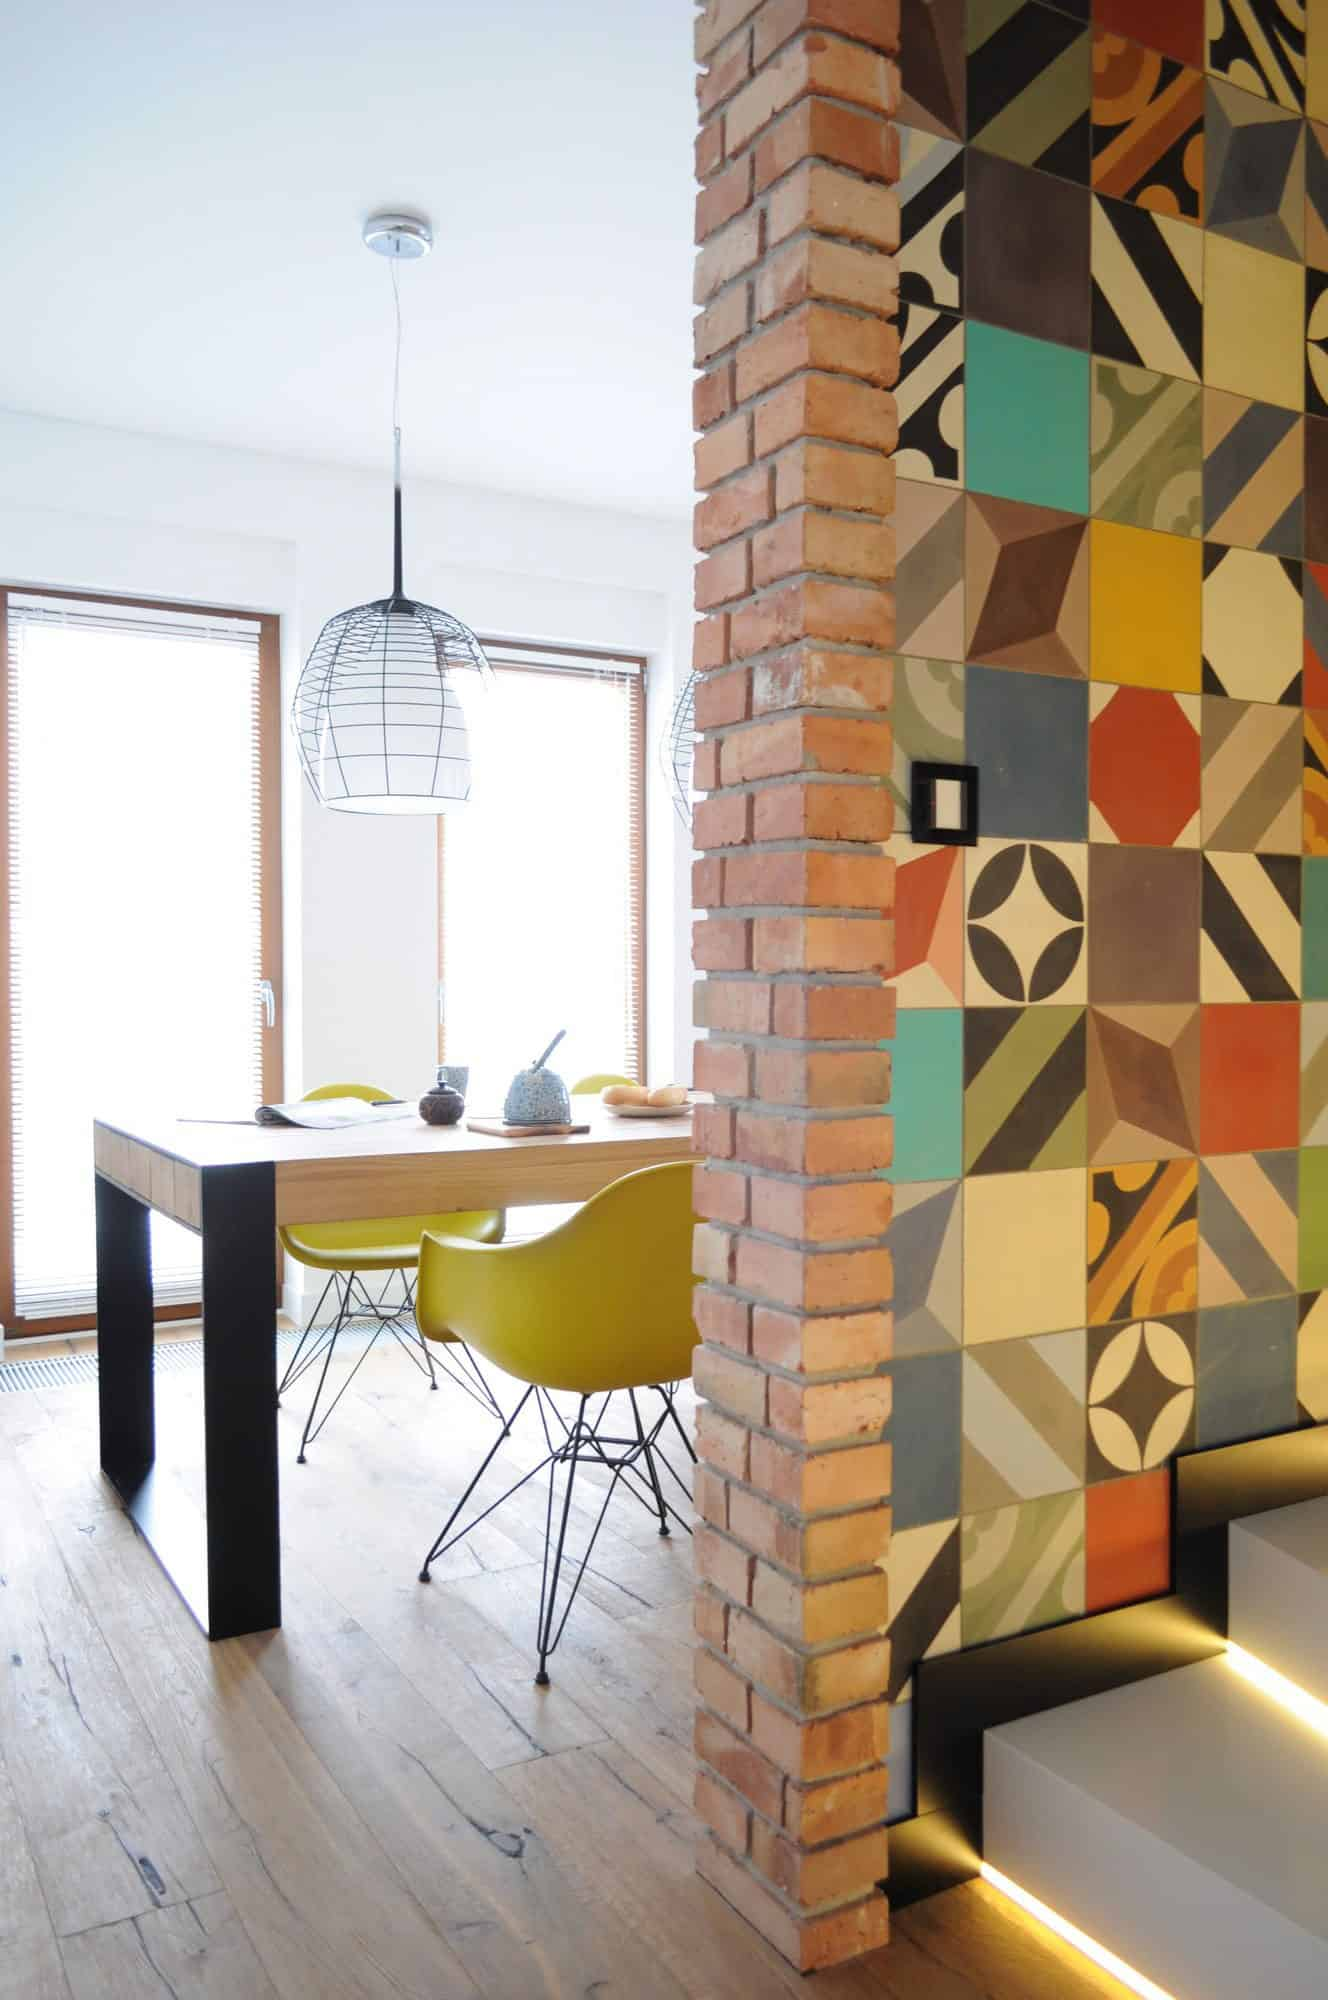 Decorating with Cement Tiles on Walls and Floors Leads to Beautiful ...